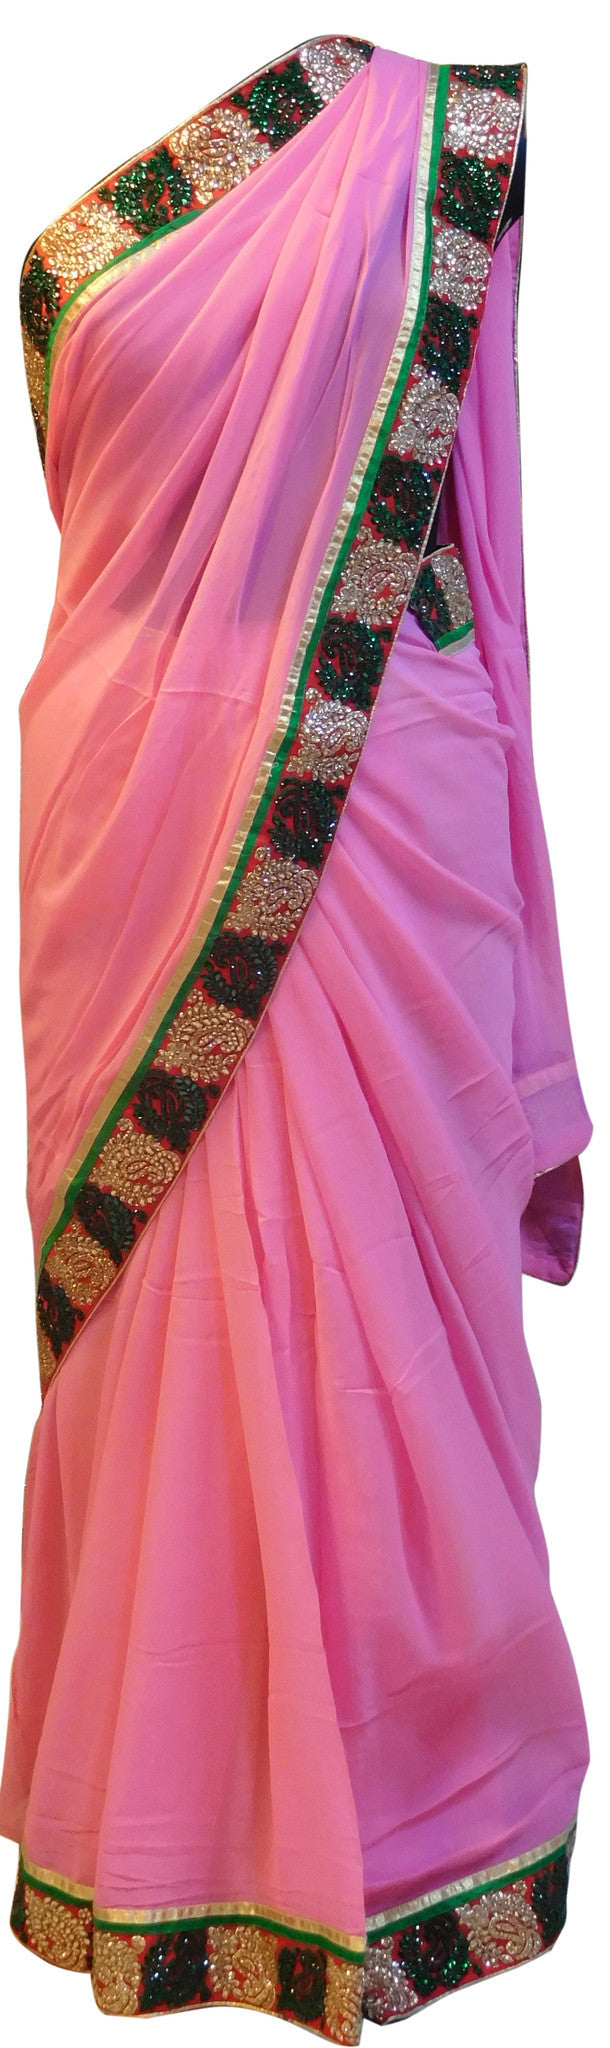 Pink Stylish Border Saree